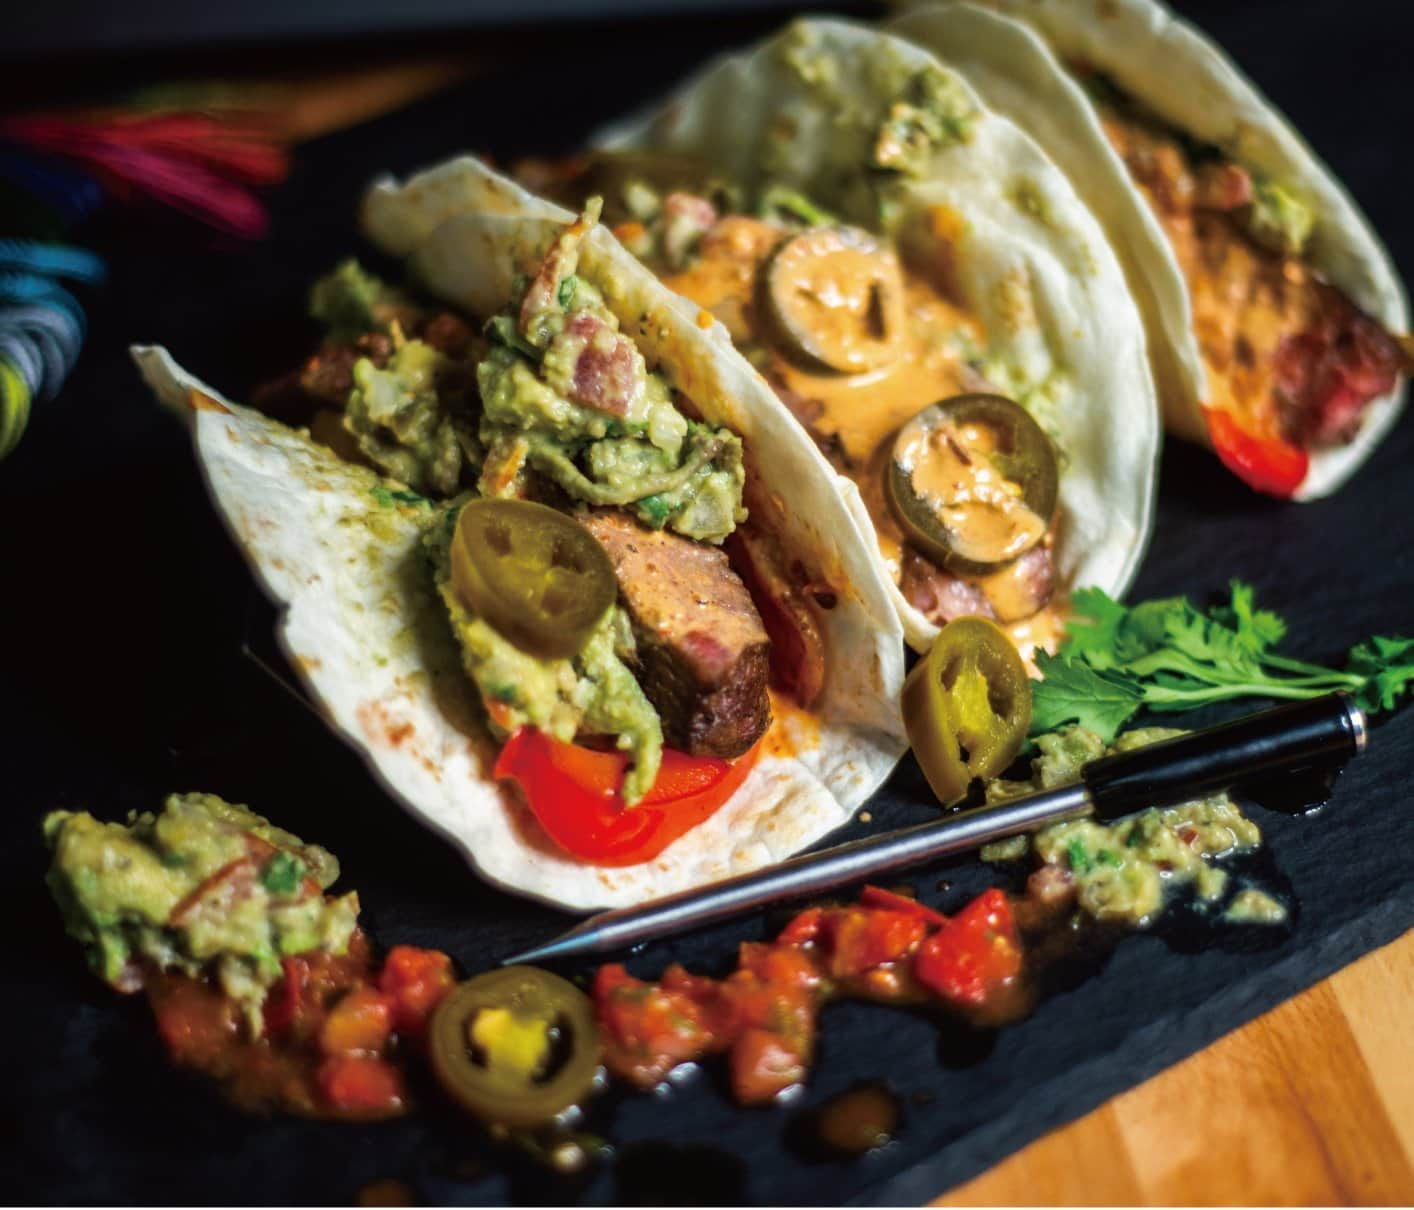 Beef Fajita Tacos with Jalapeno and Avocado with MeatStick Meat Thermometer